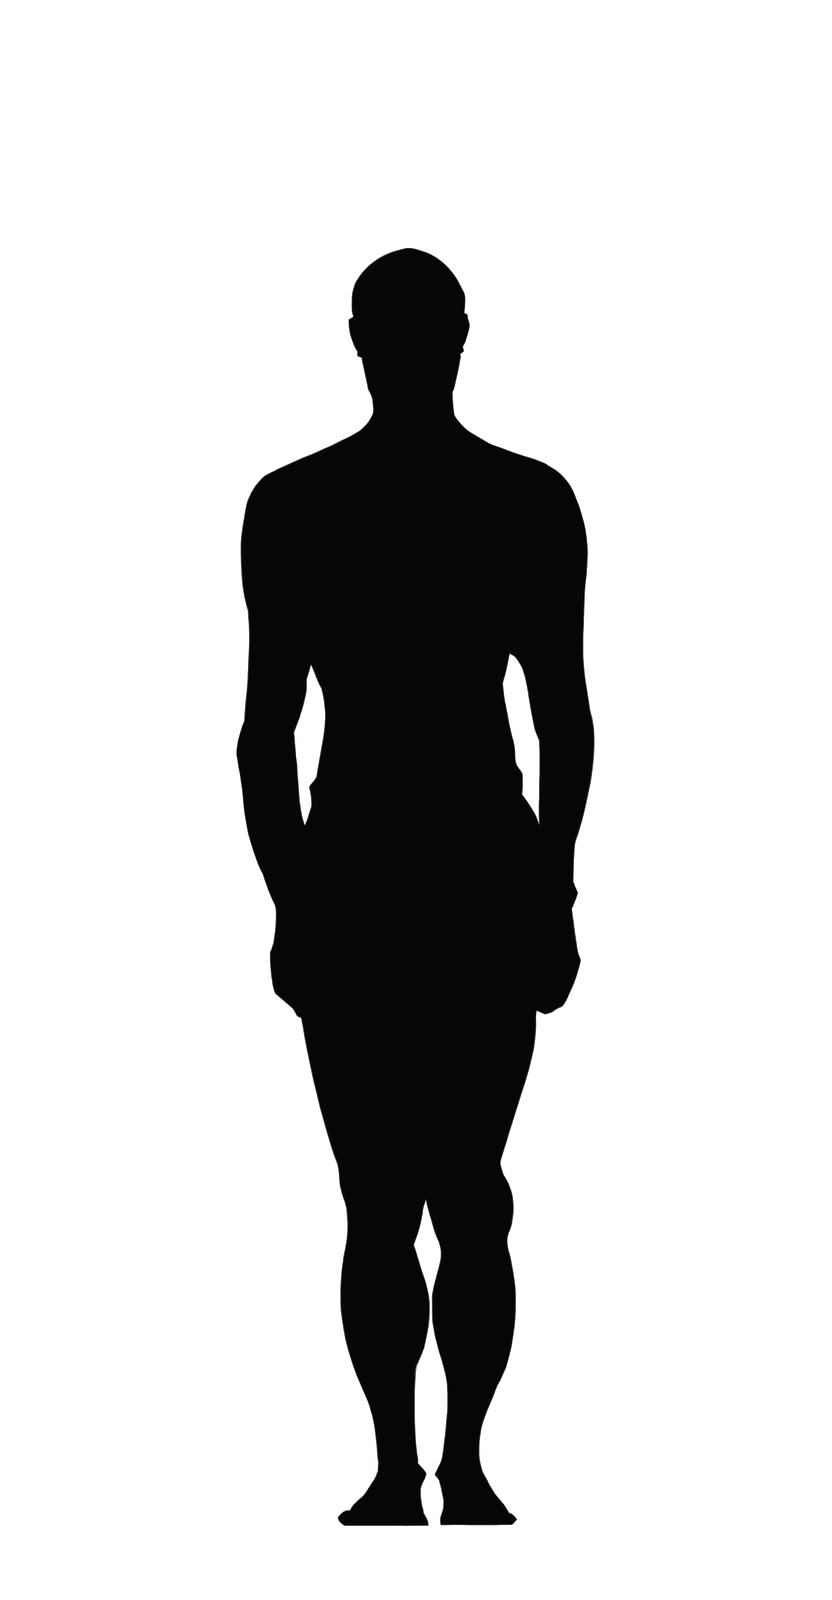 Human Body Silhouette Clipart.